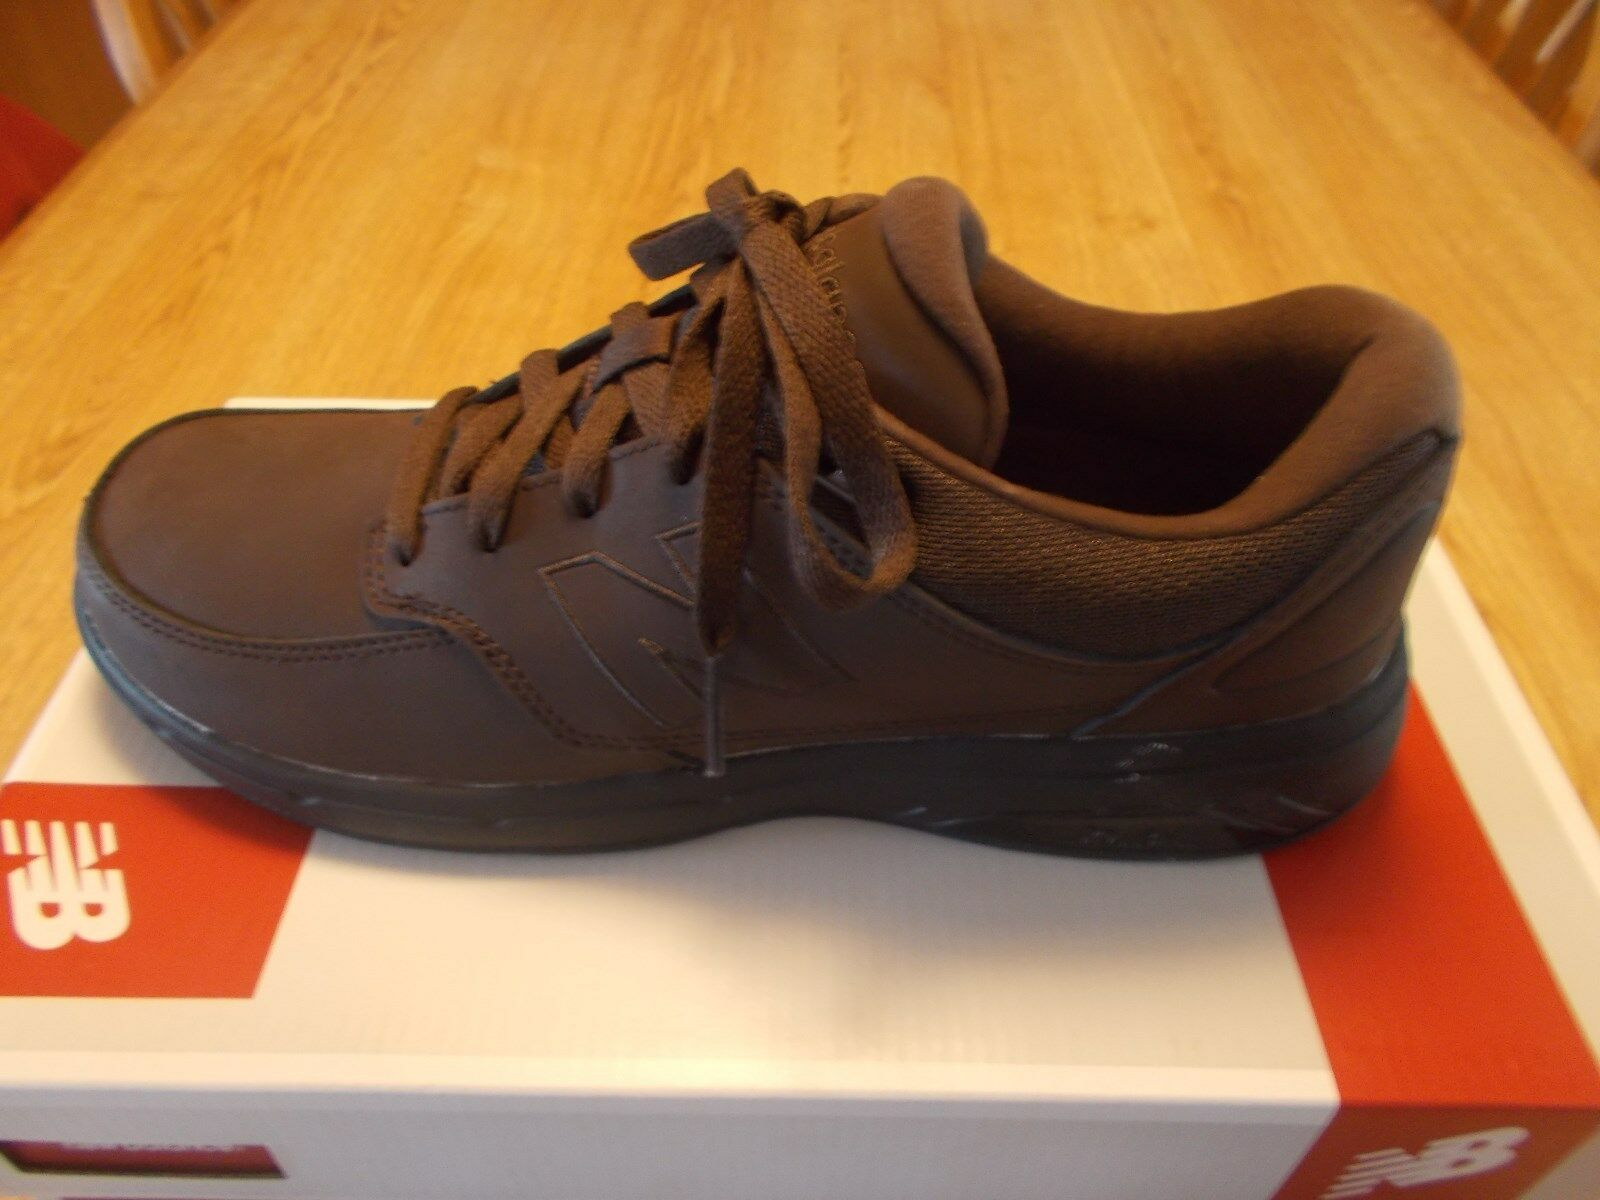 NEW BALANCE 813 MEN'S WALKING SHOES MEDIUM (D) WIDTH BROWN MULTIPLE SIZES NEW